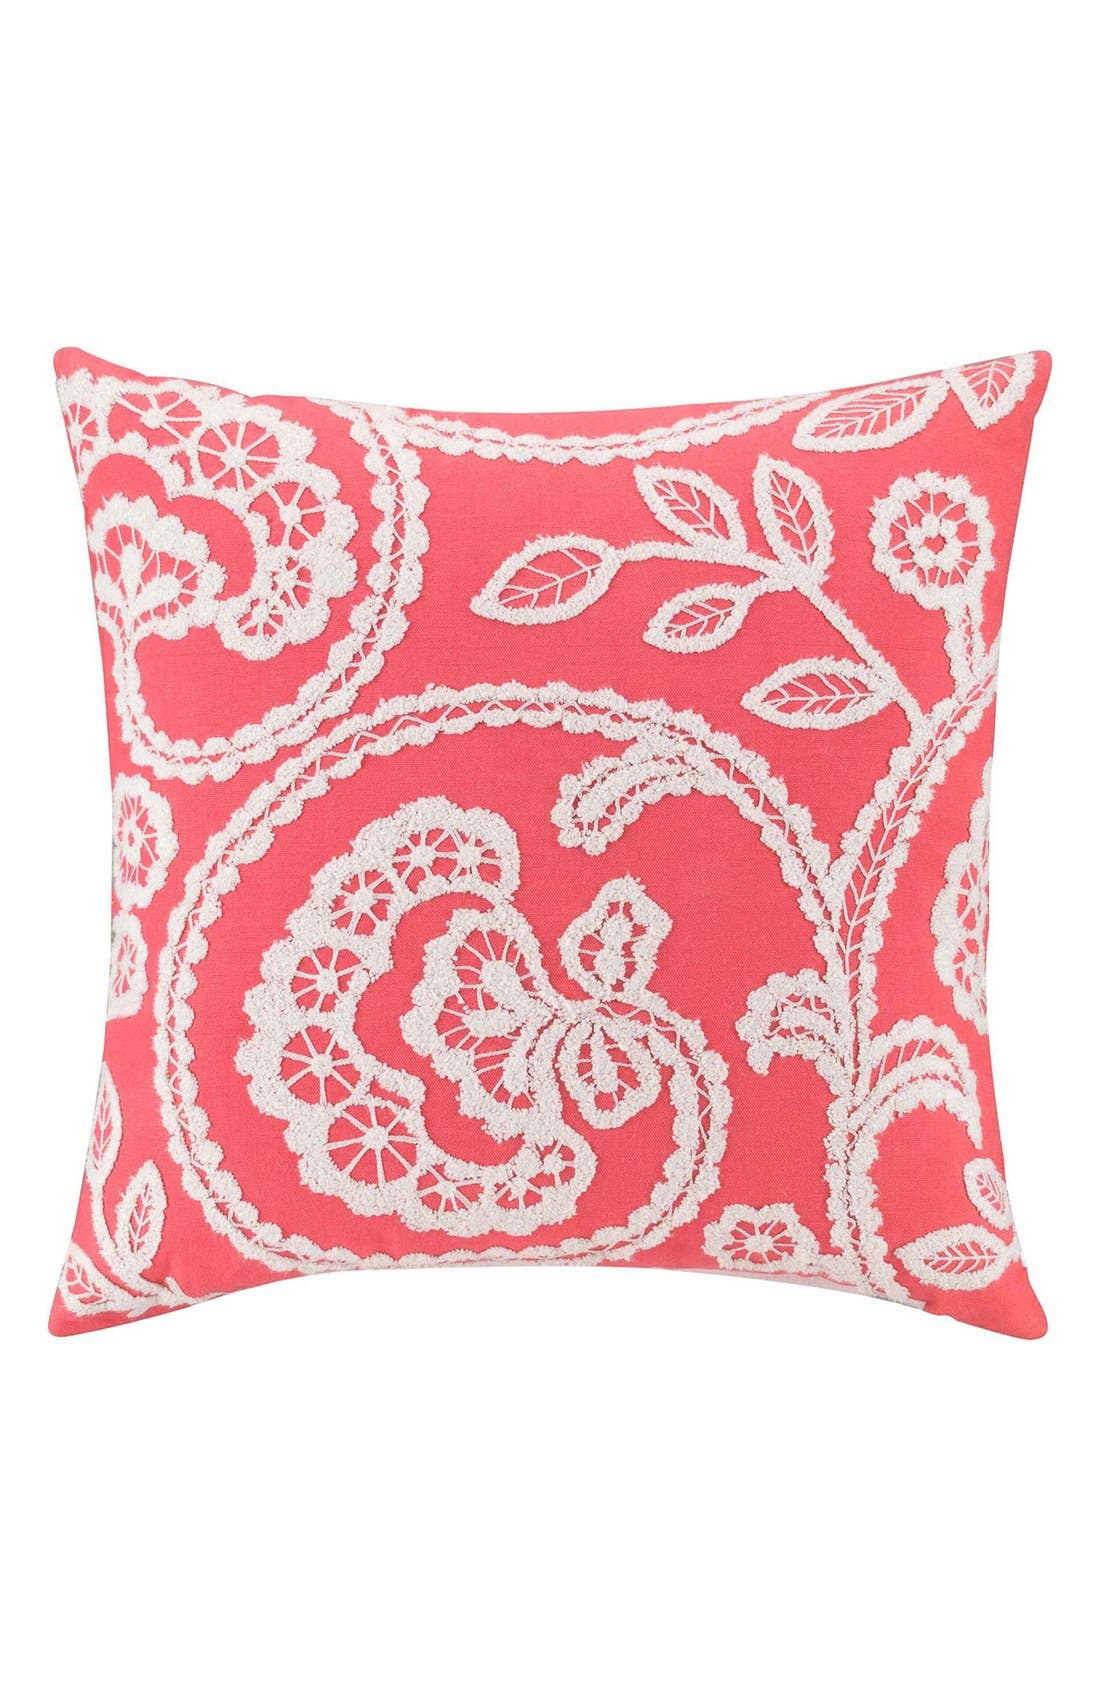 'Ingrid' Pillow,                         Main,                         color, Coral/ Taupe